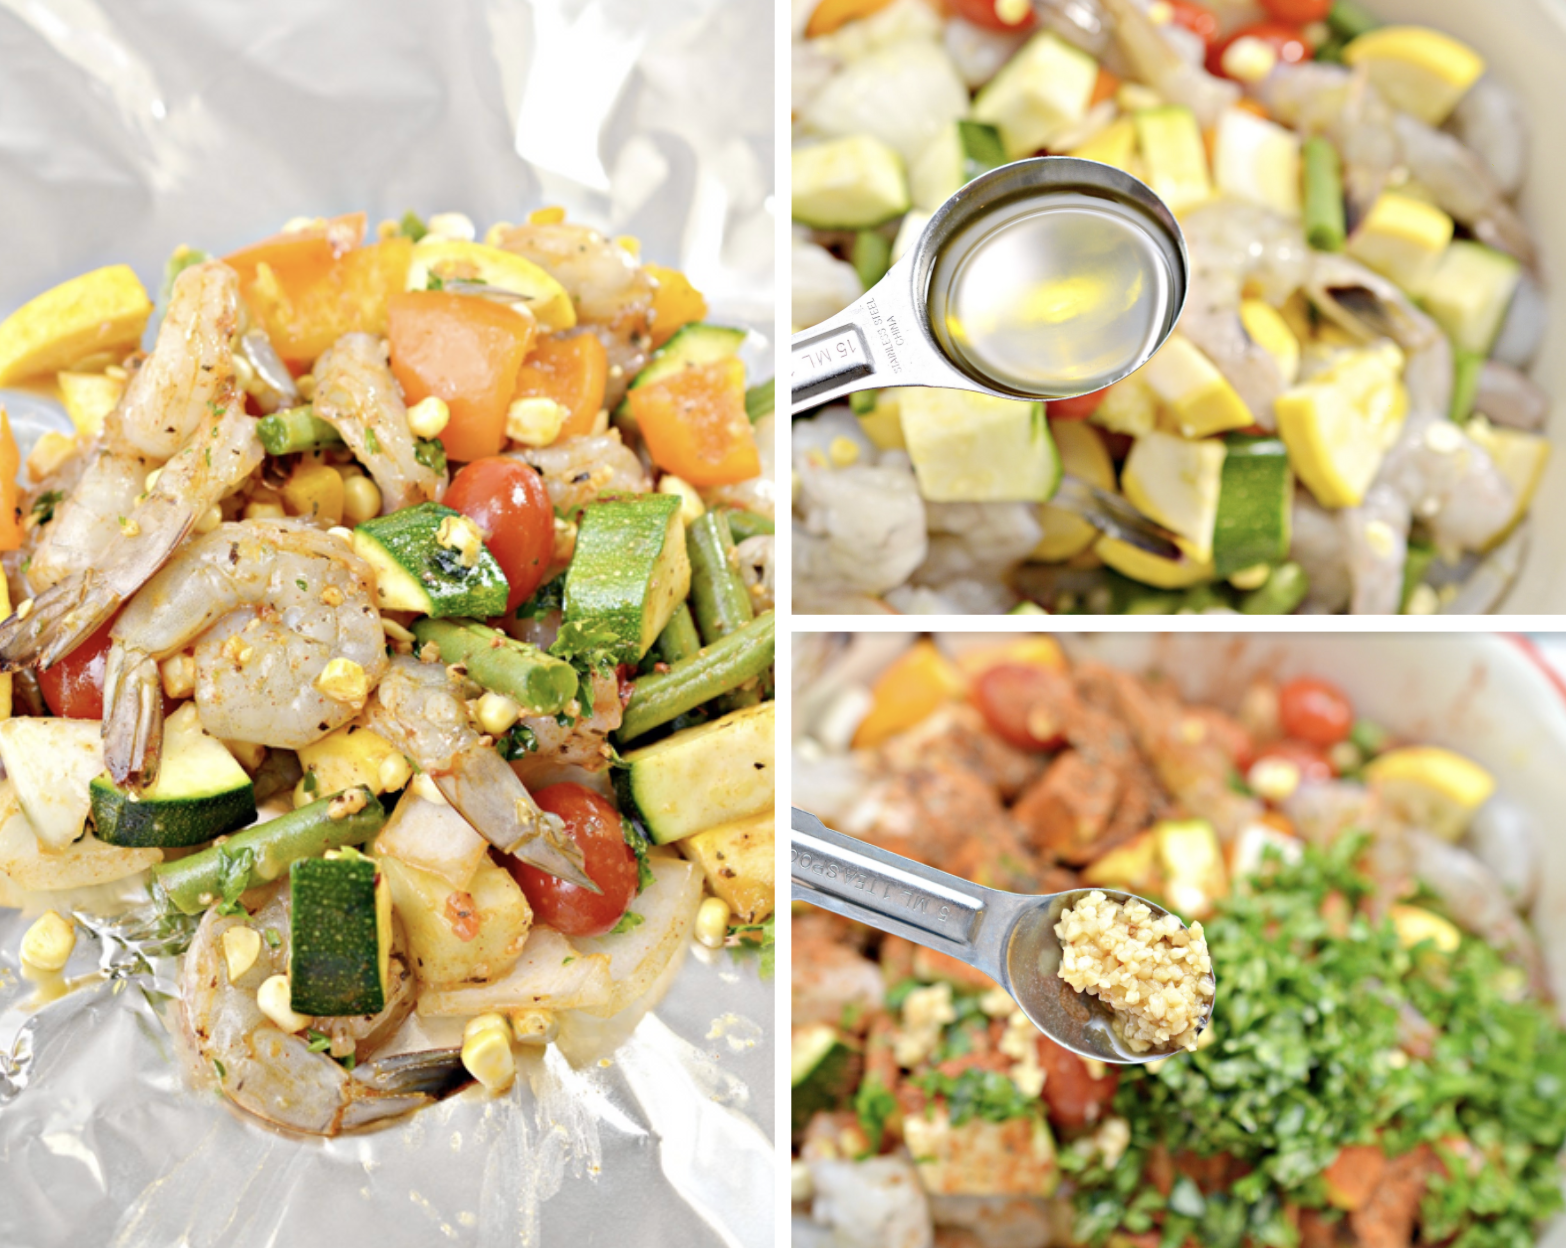 Summer shrimp and veggies foil packs recipe